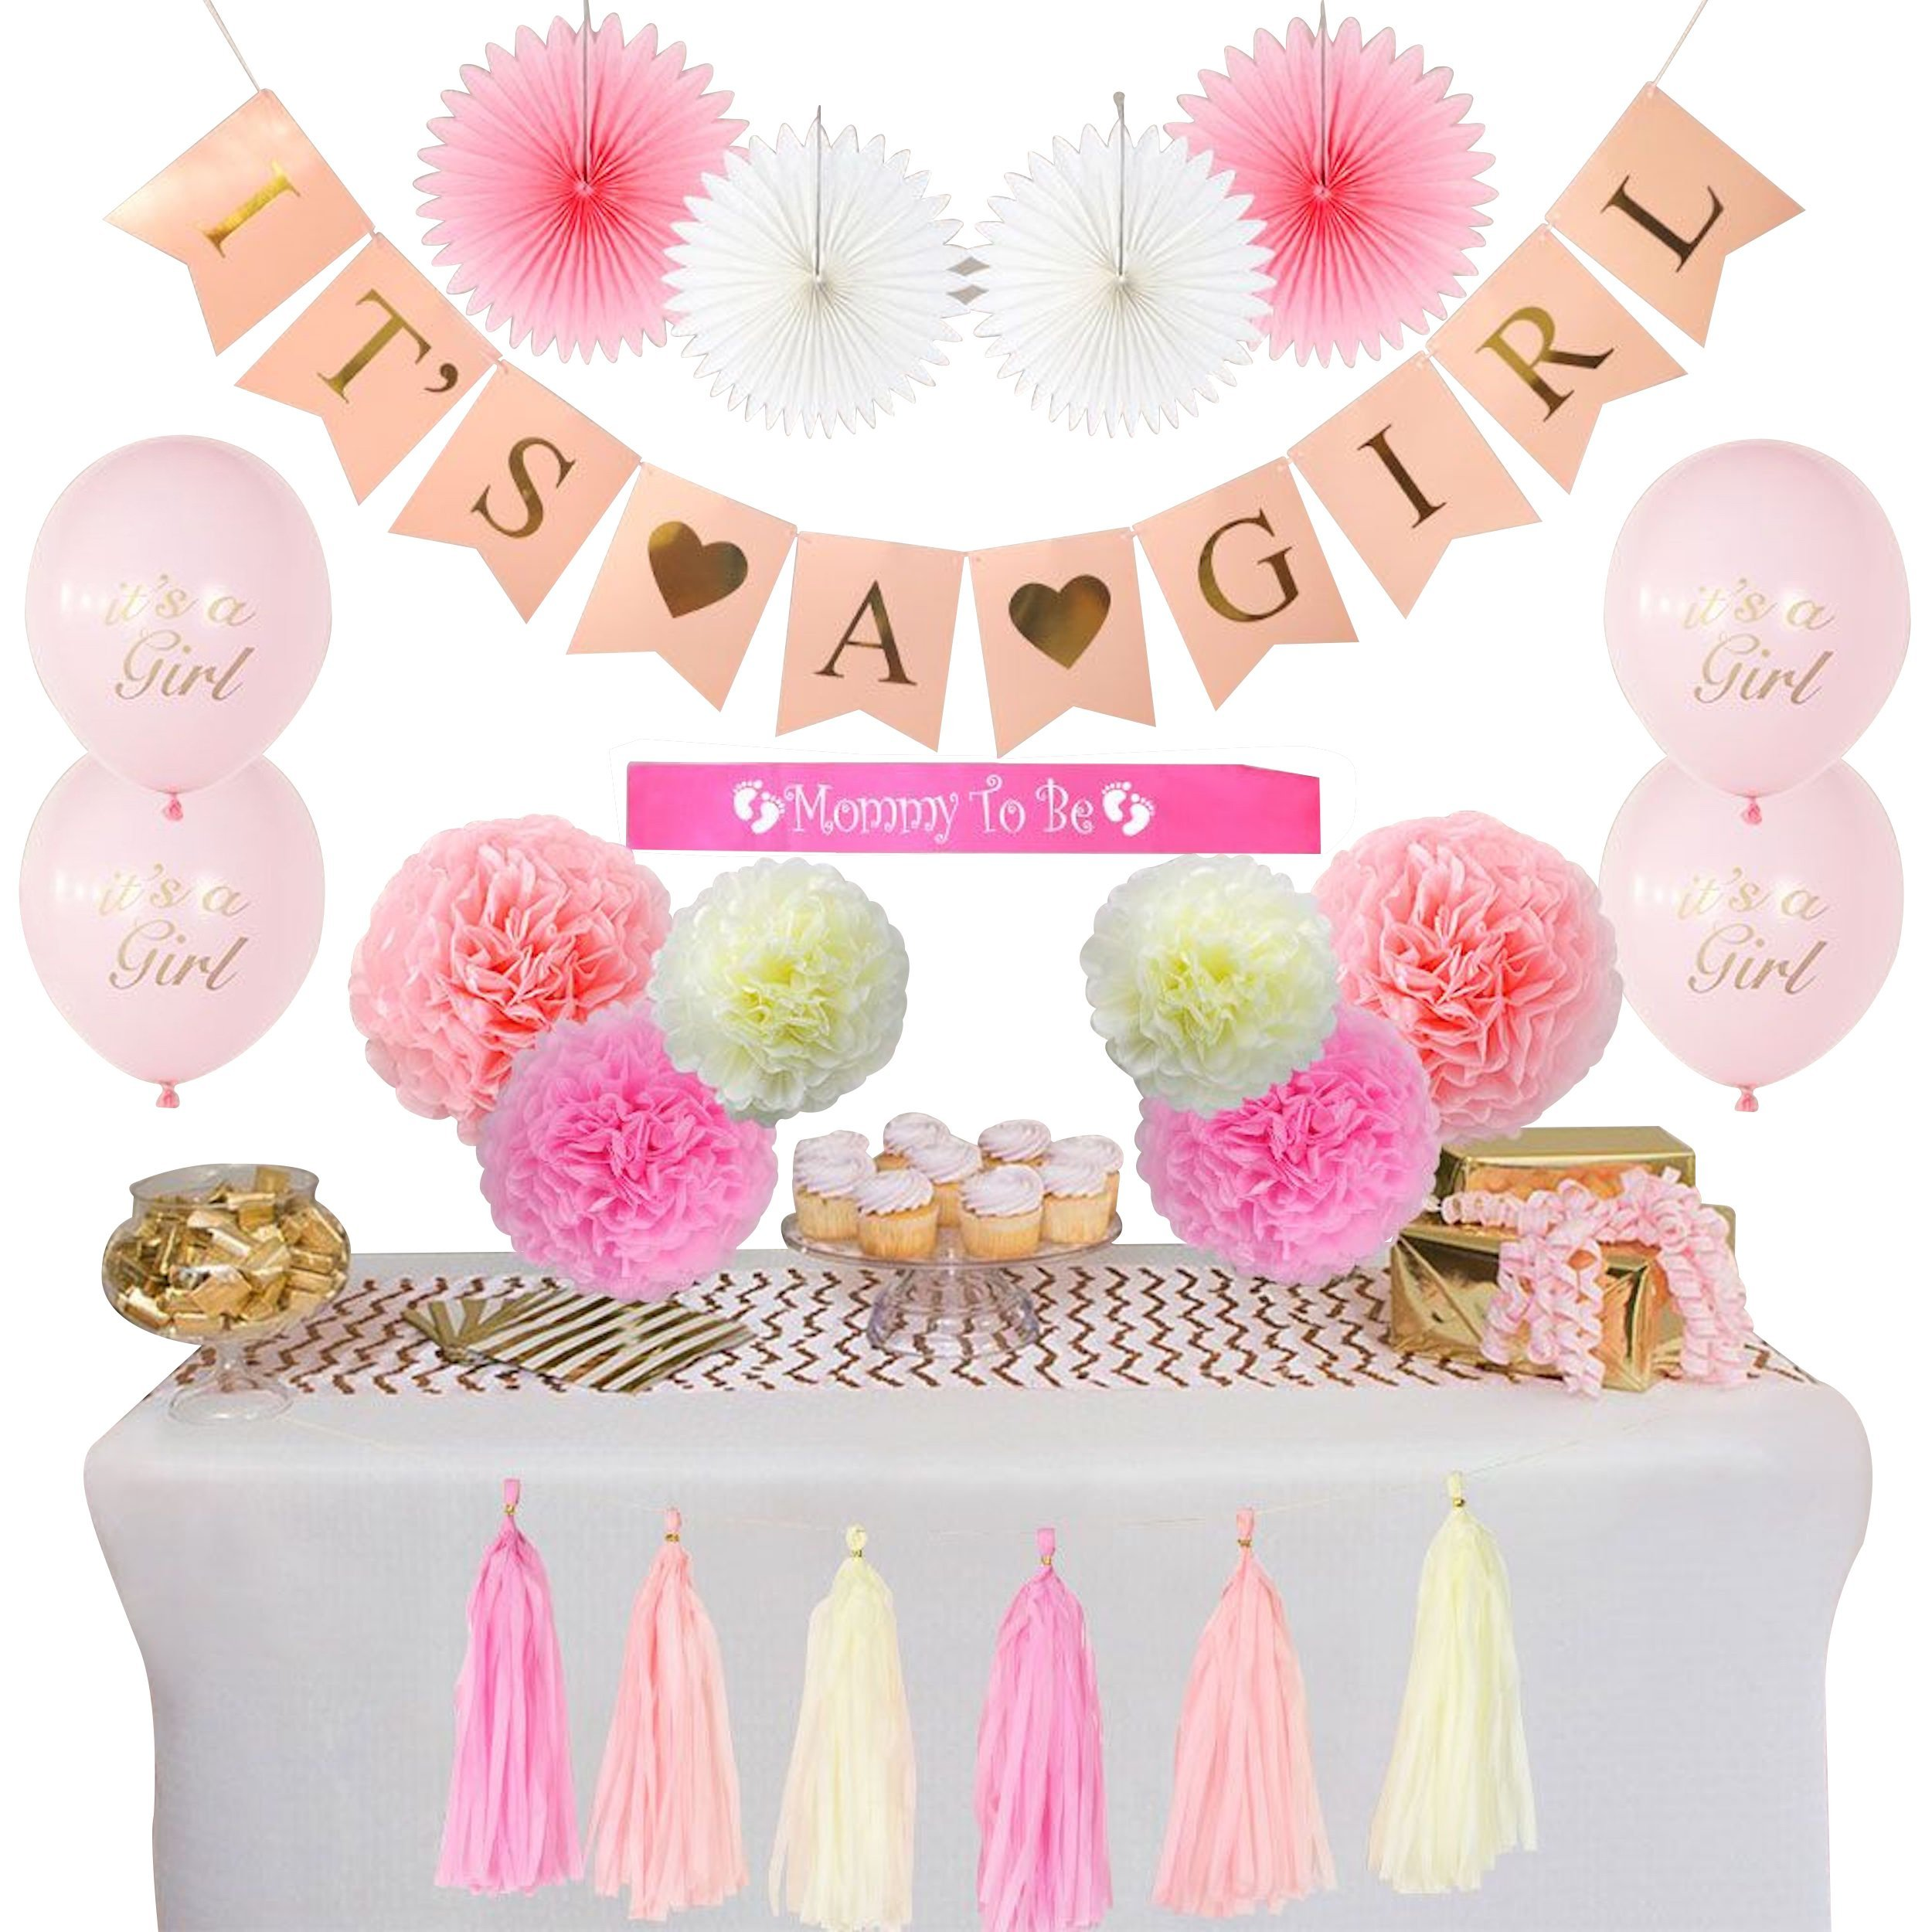 Amazon.com: Baby Shower Decorations For Girl Pink and Gold Theme: OH ...